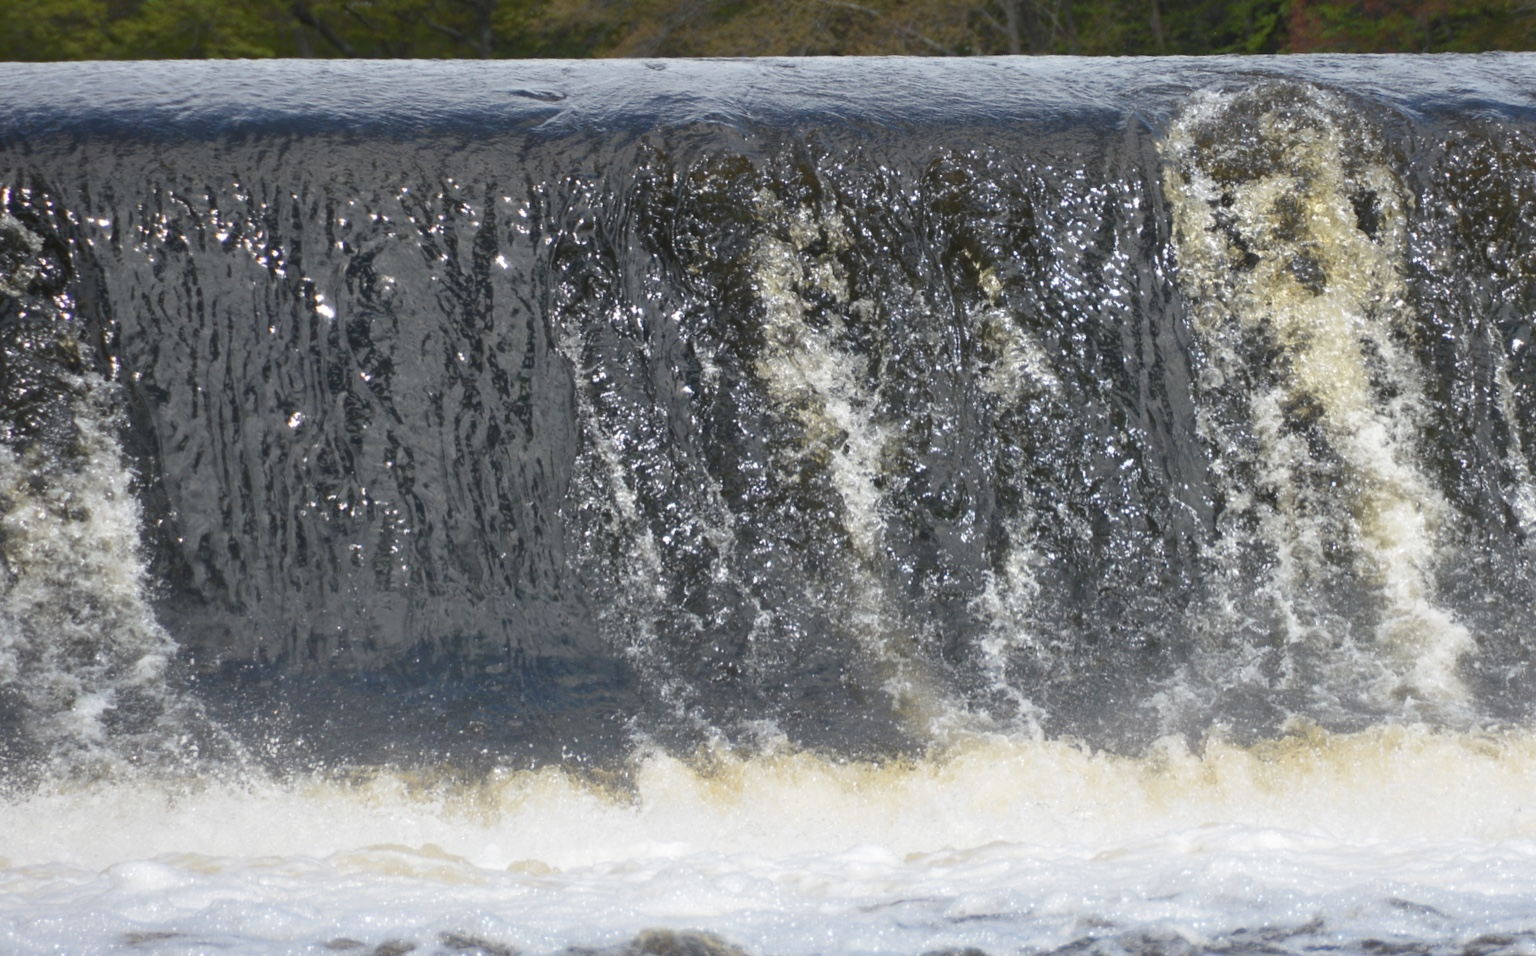 close-up of powerful waterfall